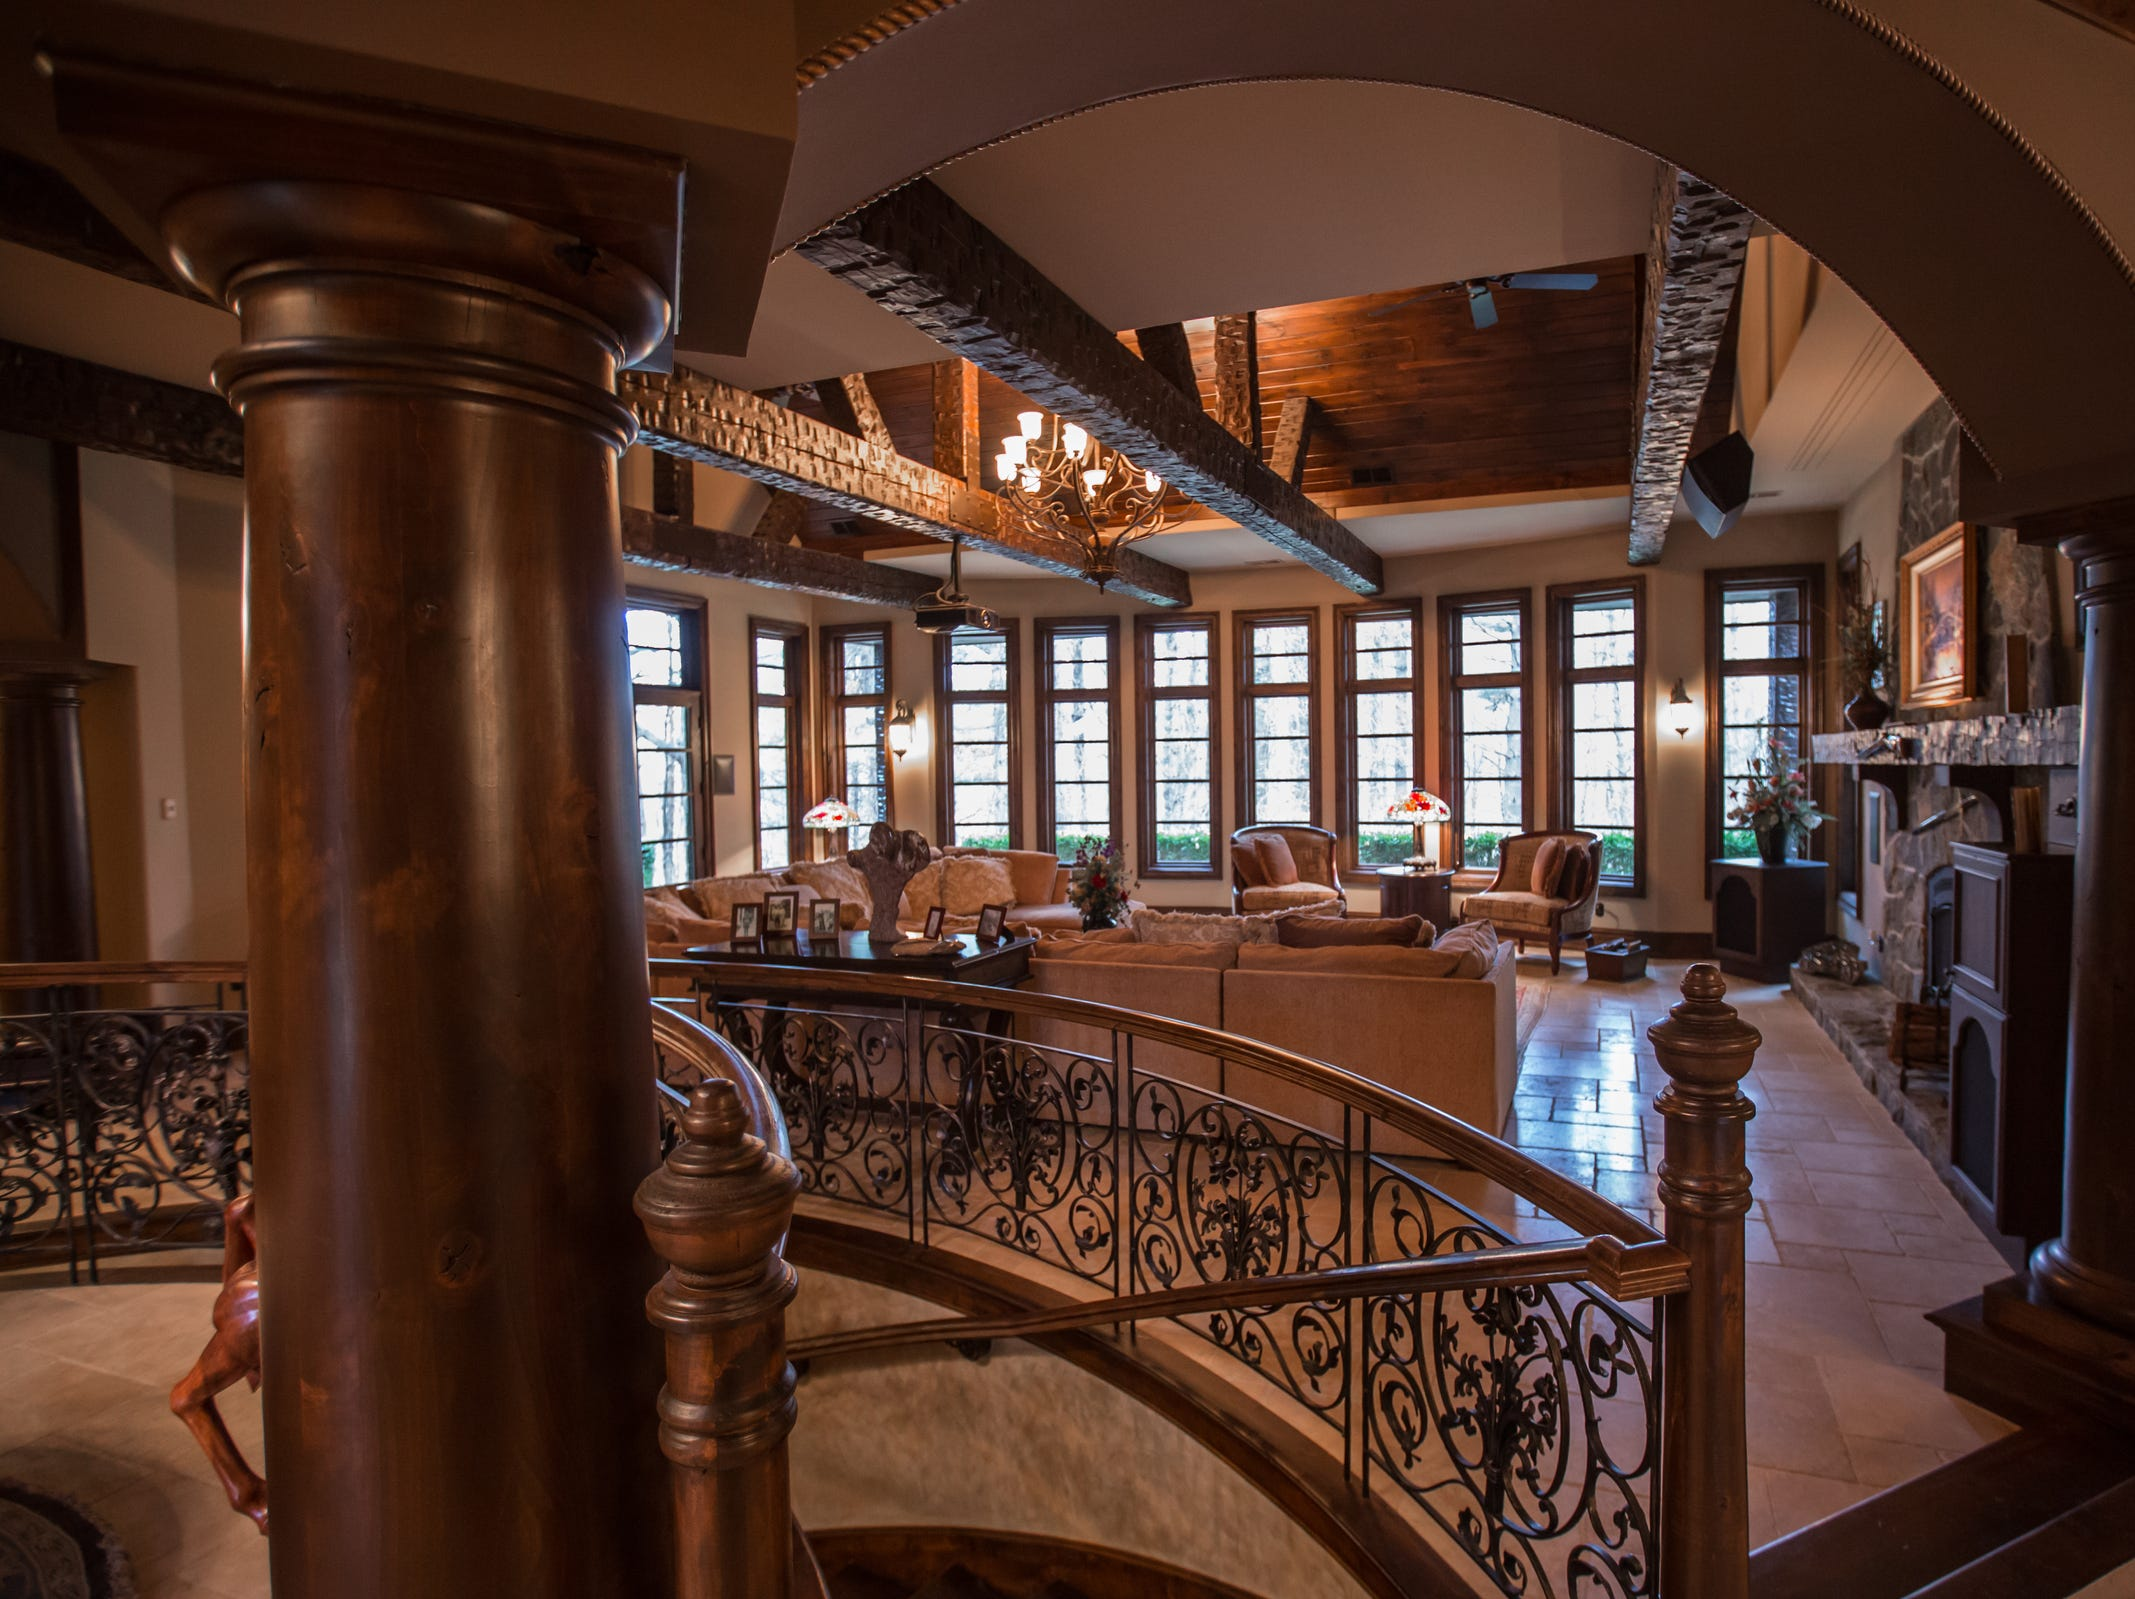 A view of the great room of the home envisioned after the Biltmore Estate designed by Alex Bogarts and built by an award winning builder as his own personal residence.